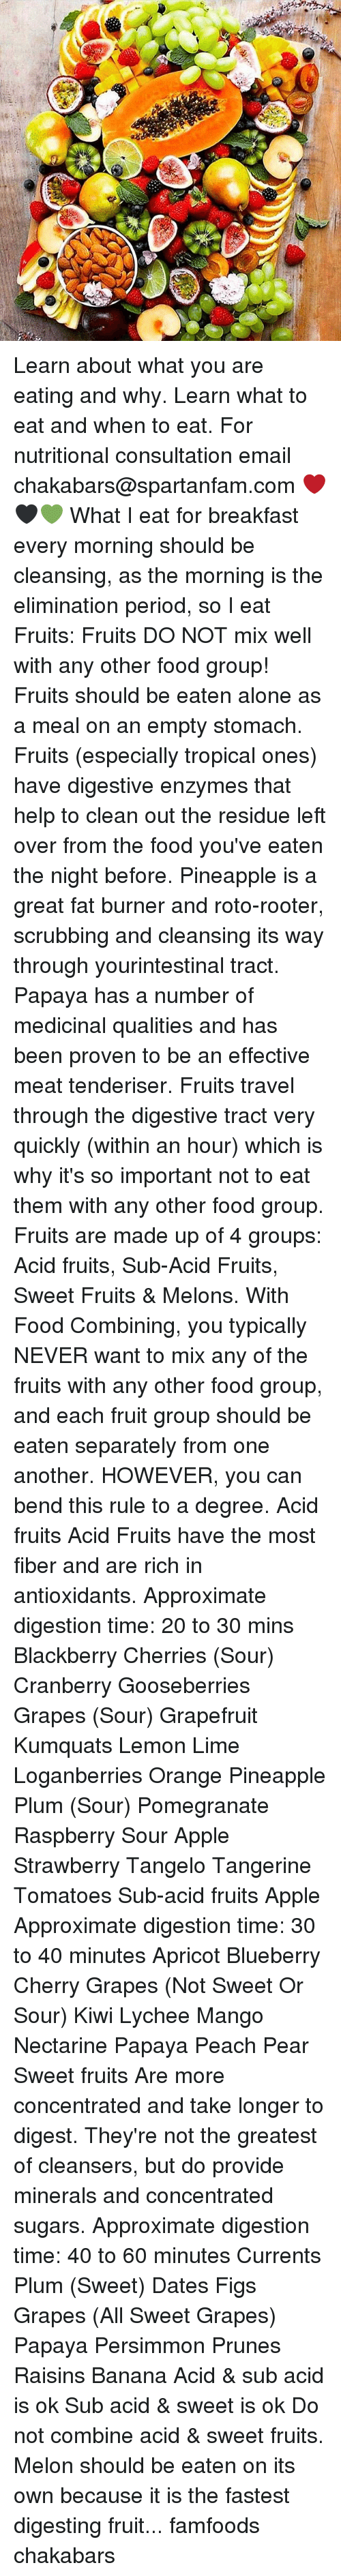 food groups: CSA. Learn about what you are eating and why. Learn what to eat and when to eat. For nutritional consultation email chakabars@spartanfam.com ❤️🖤💚 What I eat for breakfast every morning should be cleansing, as the morning is the elimination period, so I eat Fruits: Fruits DO NOT mix well with any other food group! Fruits should be eaten alone as a meal on an empty stomach. Fruits (especially tropical ones) have digestive enzymes that help to clean out the residue left over from the food you've eaten the night before. Pineapple is a great fat burner and roto-rooter, scrubbing and cleansing its way through yourintestinal tract. Papaya has a number of medicinal qualities and has been proven to be an effective meat tenderiser. Fruits travel through the digestive tract very quickly (within an hour) which is why it's so important not to eat them with any other food group. Fruits are made up of 4 groups: Acid fruits, Sub-Acid Fruits, Sweet Fruits & Melons. With Food Combining, you typically NEVER want to mix any of the fruits with any other food group, and each fruit group should be eaten separately from one another. HOWEVER, you can bend this rule to a degree. Acid fruits Acid Fruits have the most fiber and are rich in antioxidants. Approximate digestion time: 20 to 30 mins Blackberry Cherries (Sour) Cranberry Gooseberries Grapes (Sour) Grapefruit Kumquats Lemon Lime Loganberries Orange Pineapple Plum (Sour) Pomegranate Raspberry Sour Apple Strawberry Tangelo Tangerine Tomatoes Sub-acid fruits Apple Approximate digestion time: 30 to 40 minutes Apricot Blueberry Cherry Grapes (Not Sweet Or Sour) Kiwi Lychee Mango Nectarine Papaya Peach Pear Sweet fruits Are more concentrated and take longer to digest. They're not the greatest of cleansers, but do provide minerals and concentrated sugars. Approximate digestion time: 40 to 60 minutes Currents Plum (Sweet) Dates Figs Grapes (All Sweet Grapes) Papaya Persimmon Prunes Raisins Banana Acid & sub acid is ok Sub acid & 